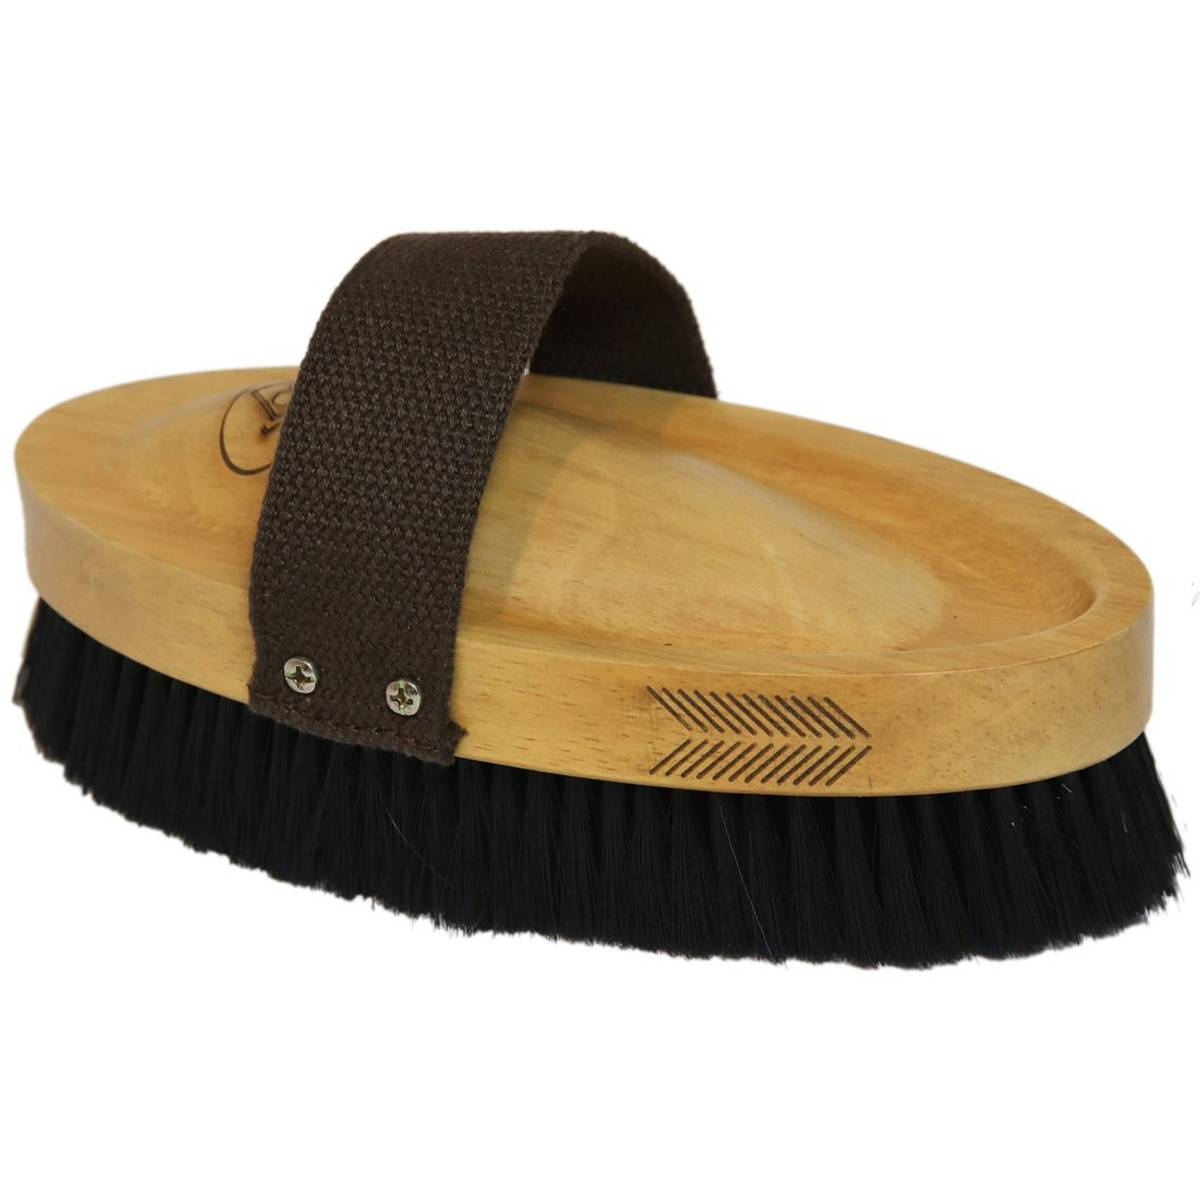 Grooming Deluxe Overall brush hard